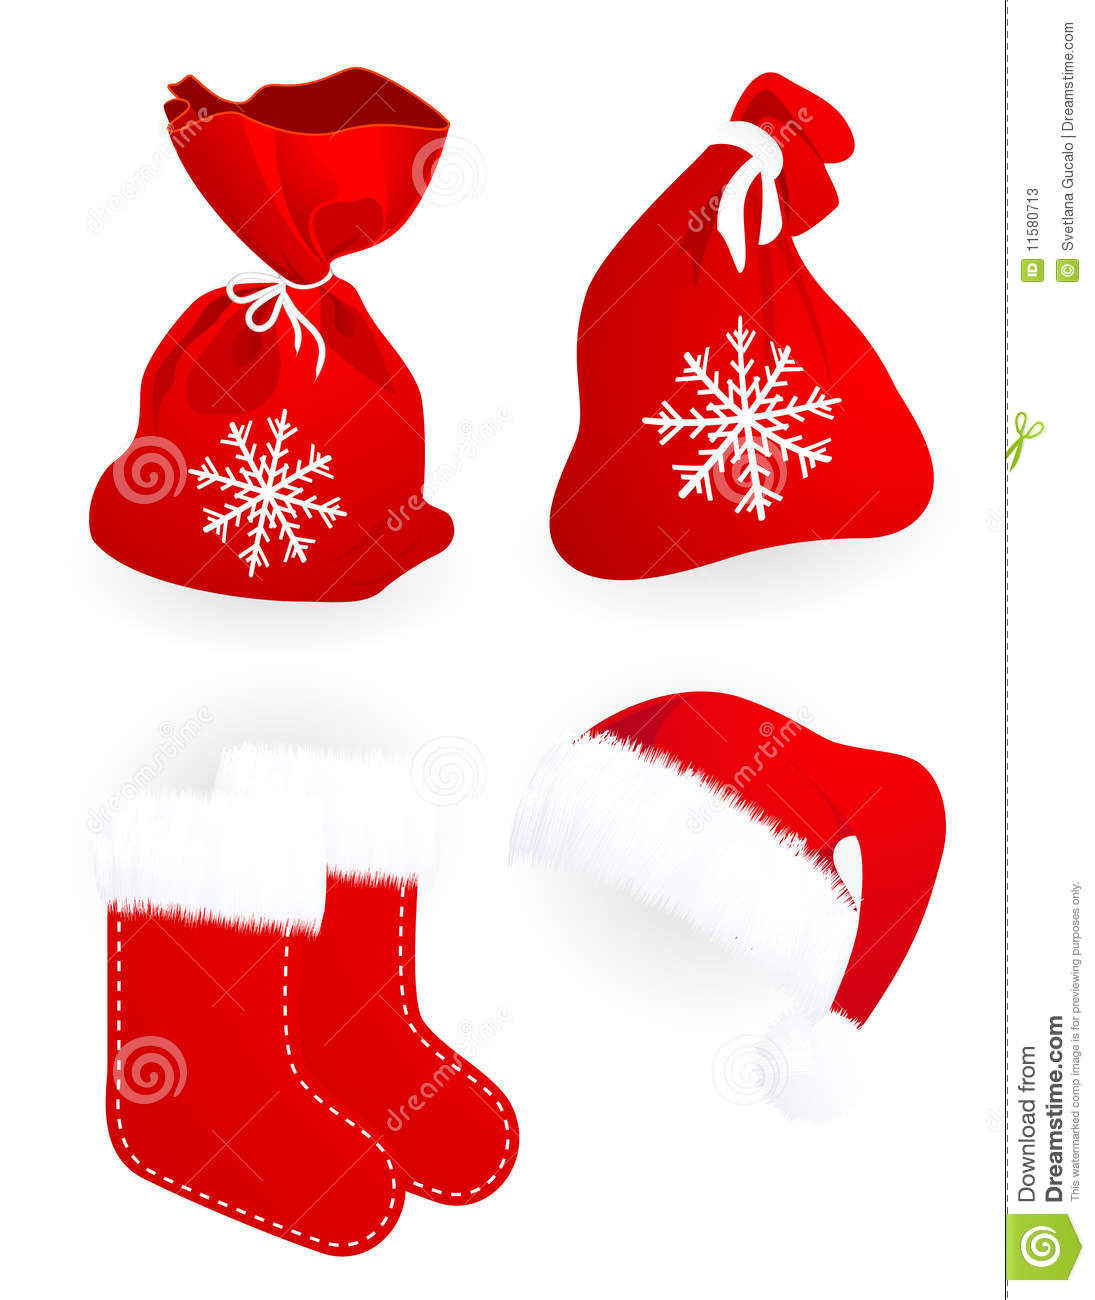 Socks clipart santa claus. Gift bags and hat clip art royalty free library